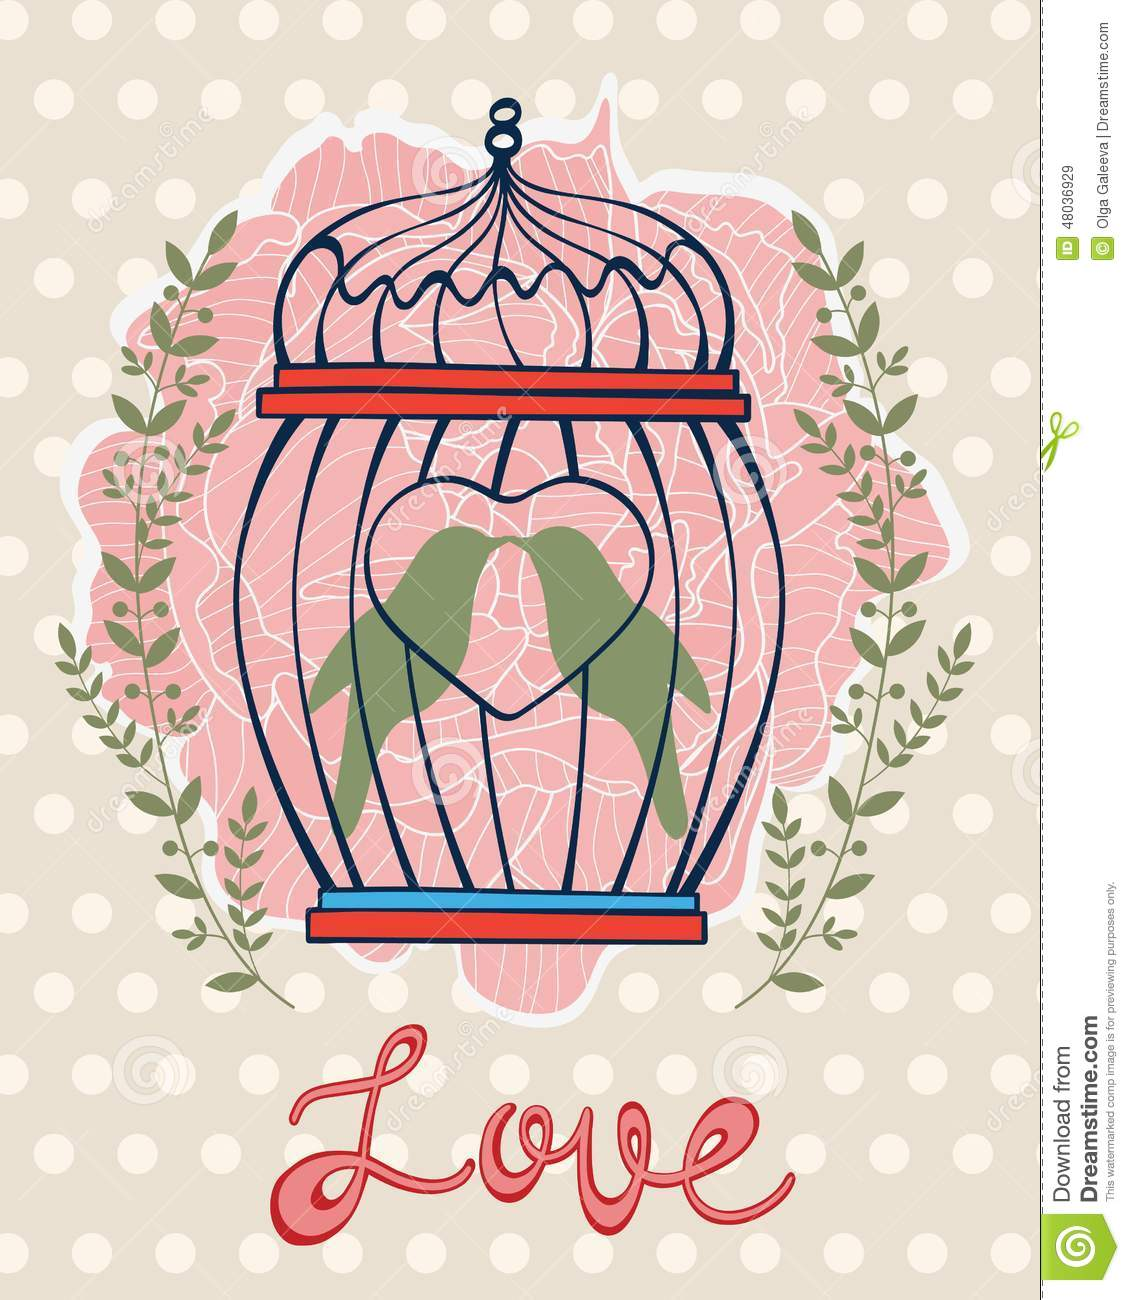 Beautiful Card With Birds In Cage Stock Vector